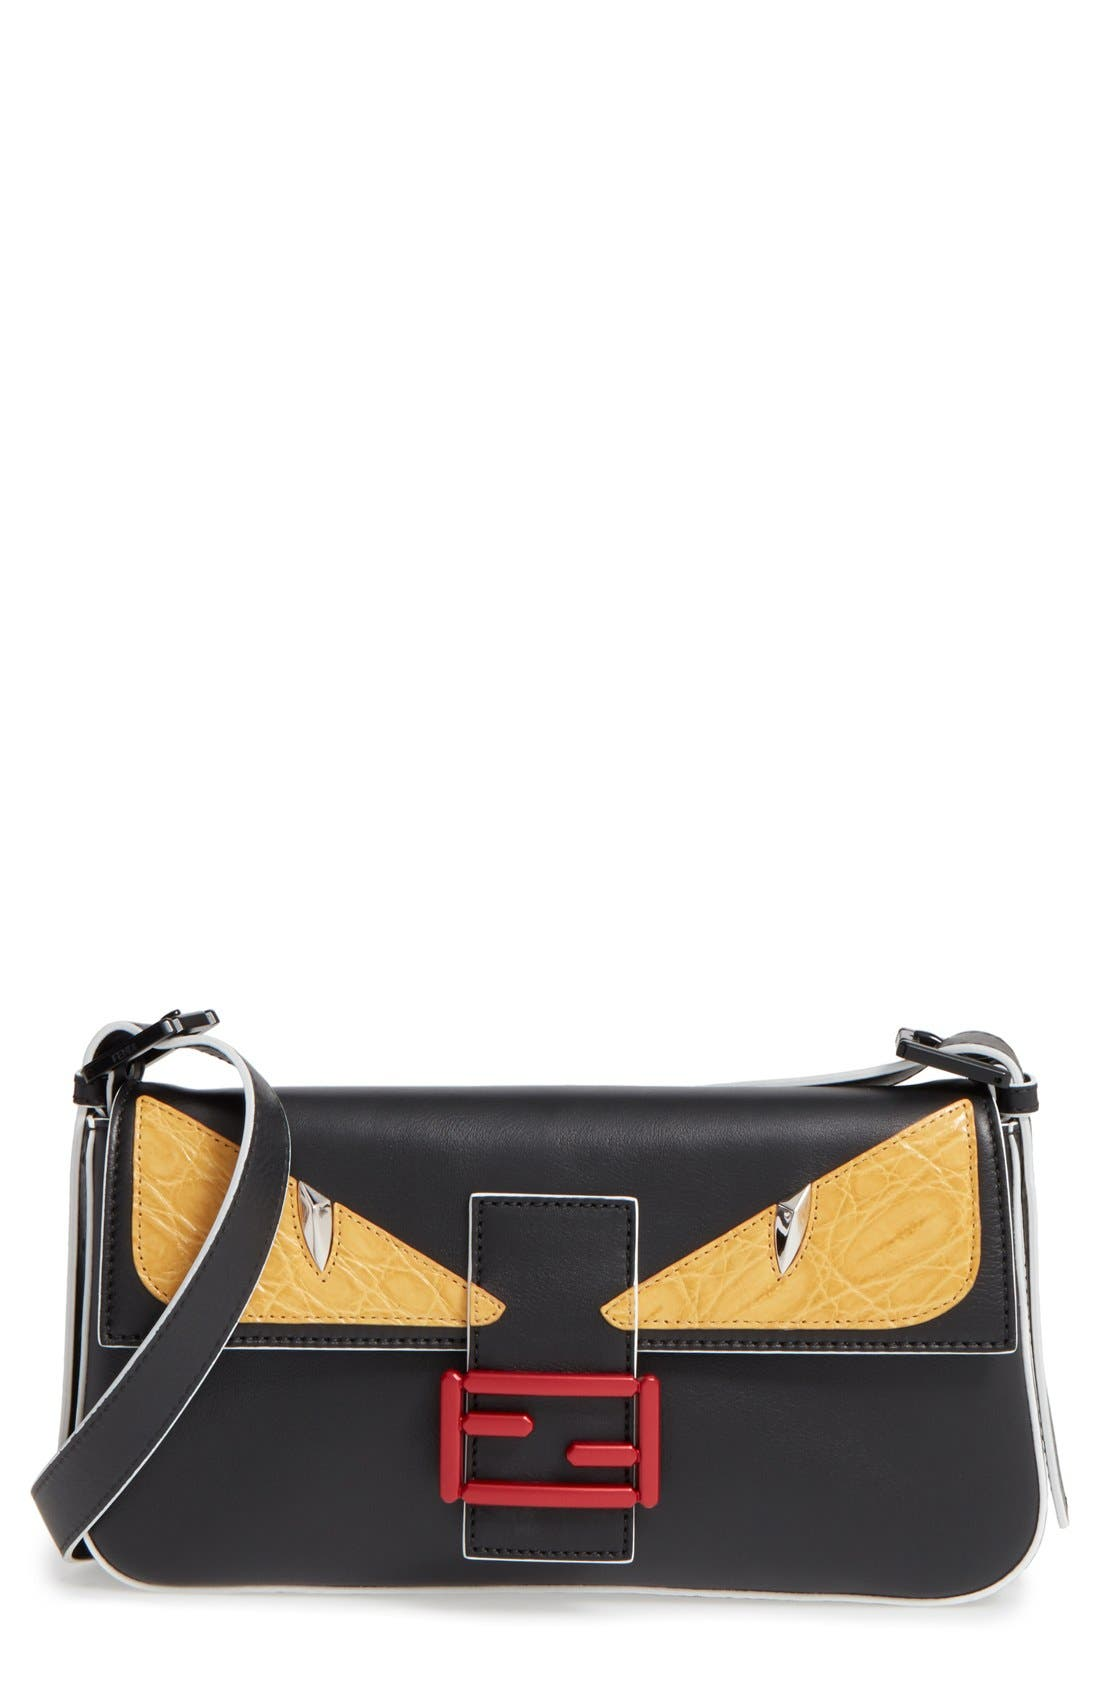 FENDI 'Mini Monster' Leather Baguette